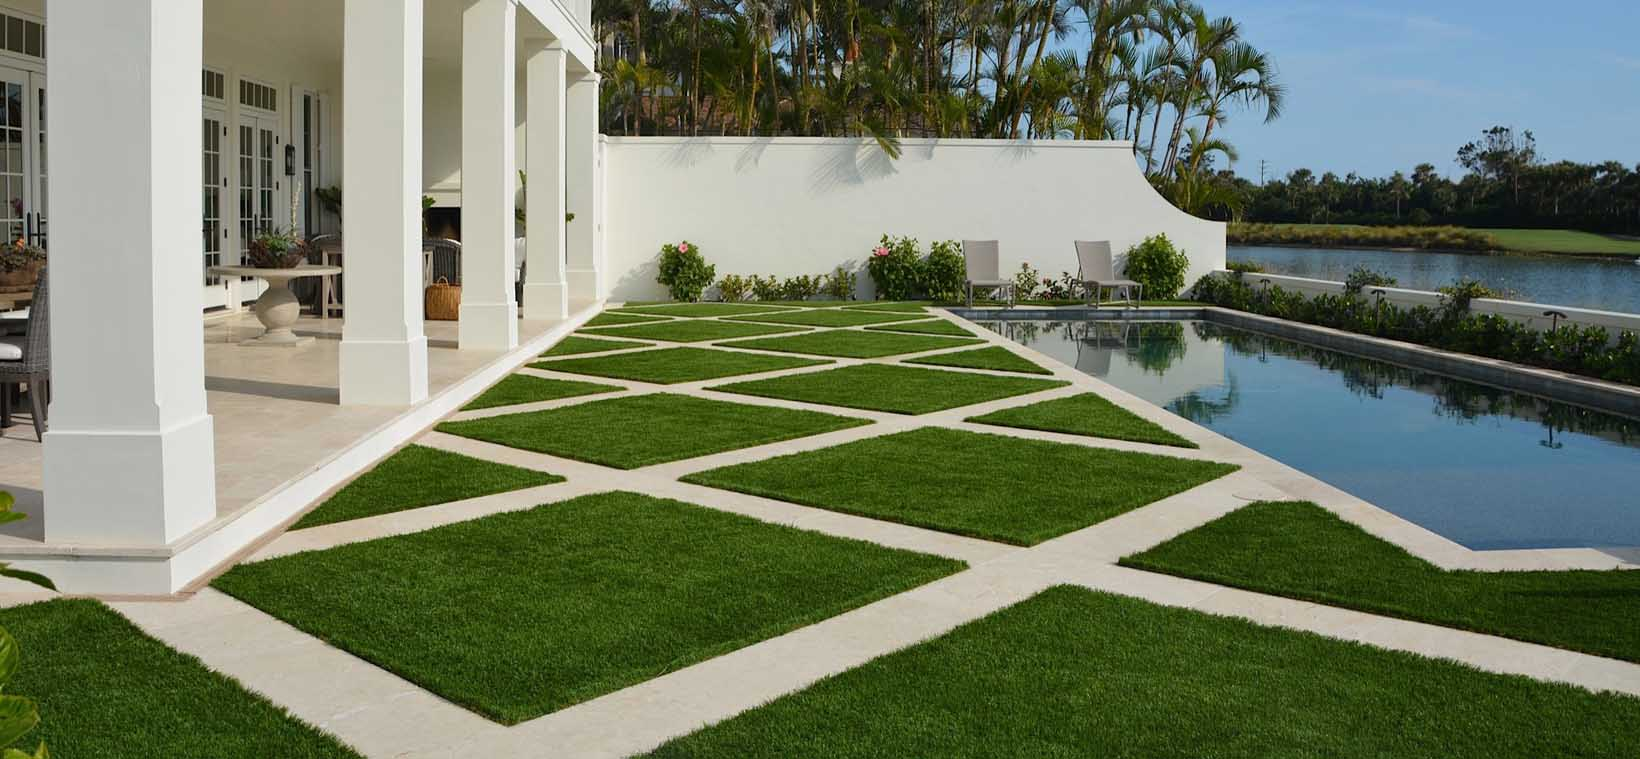 Aiello Landscape synthetic turf pool side